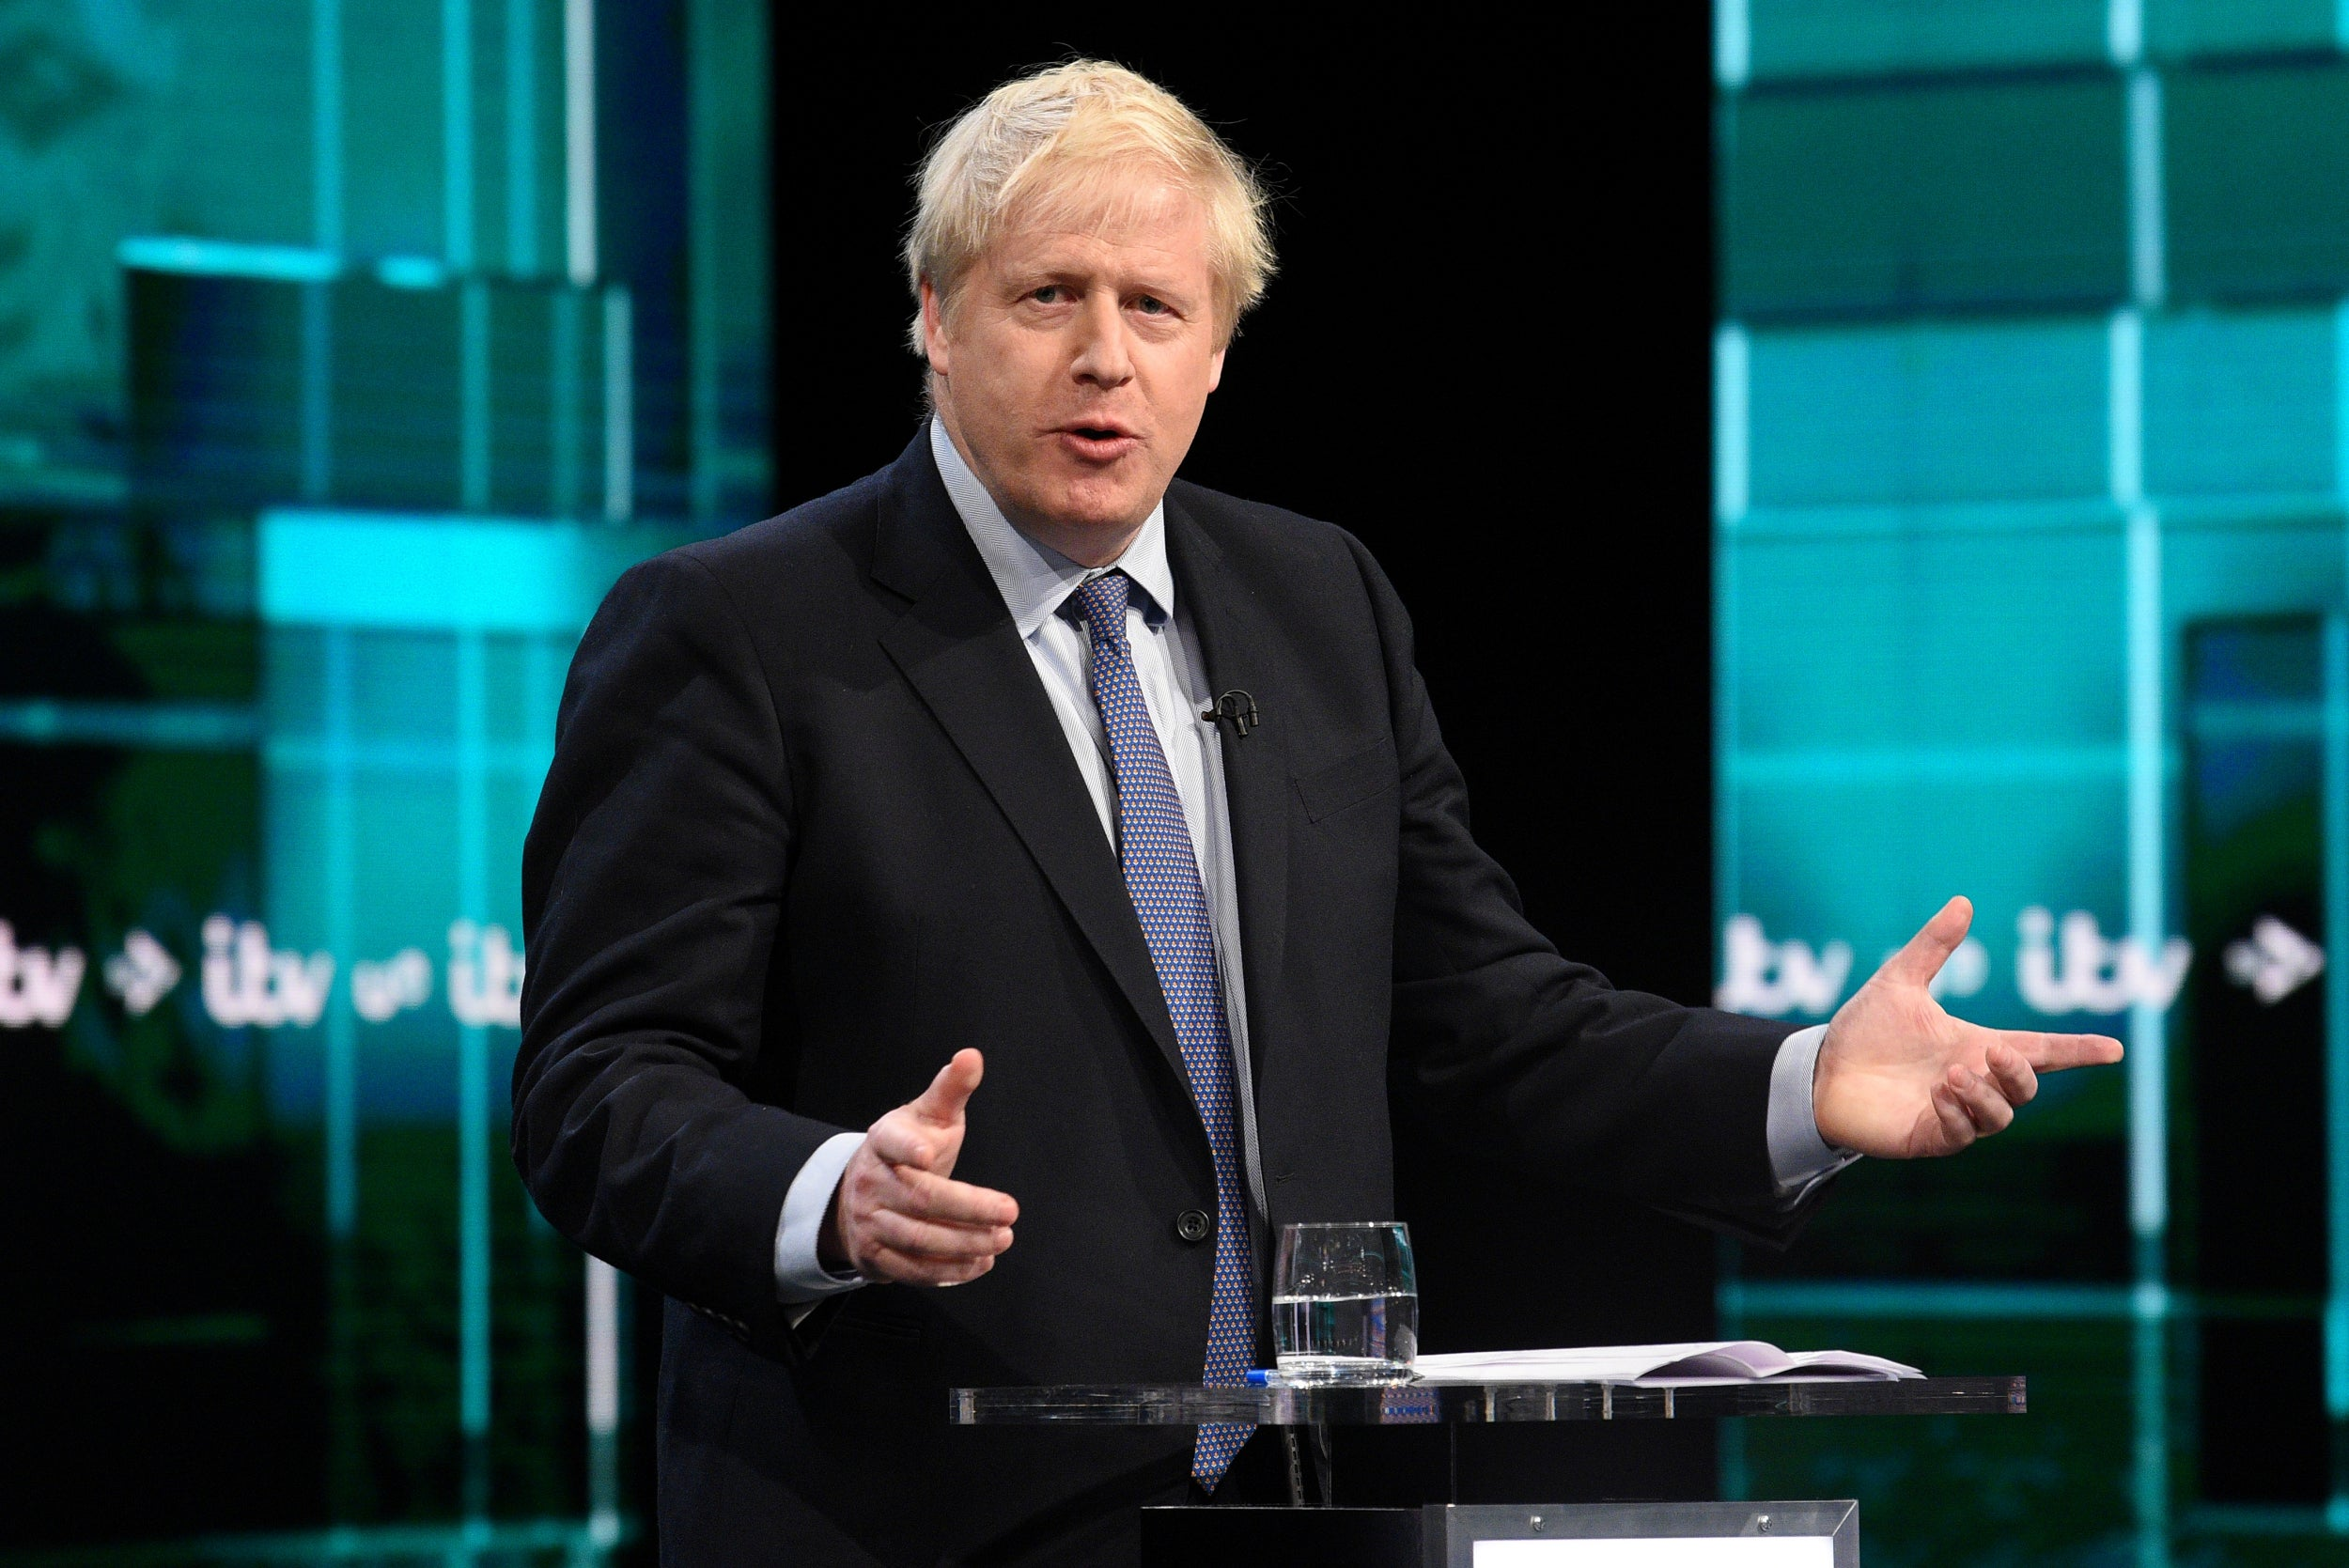 The audience won the leaders' debate – because they didn't believe a word of it